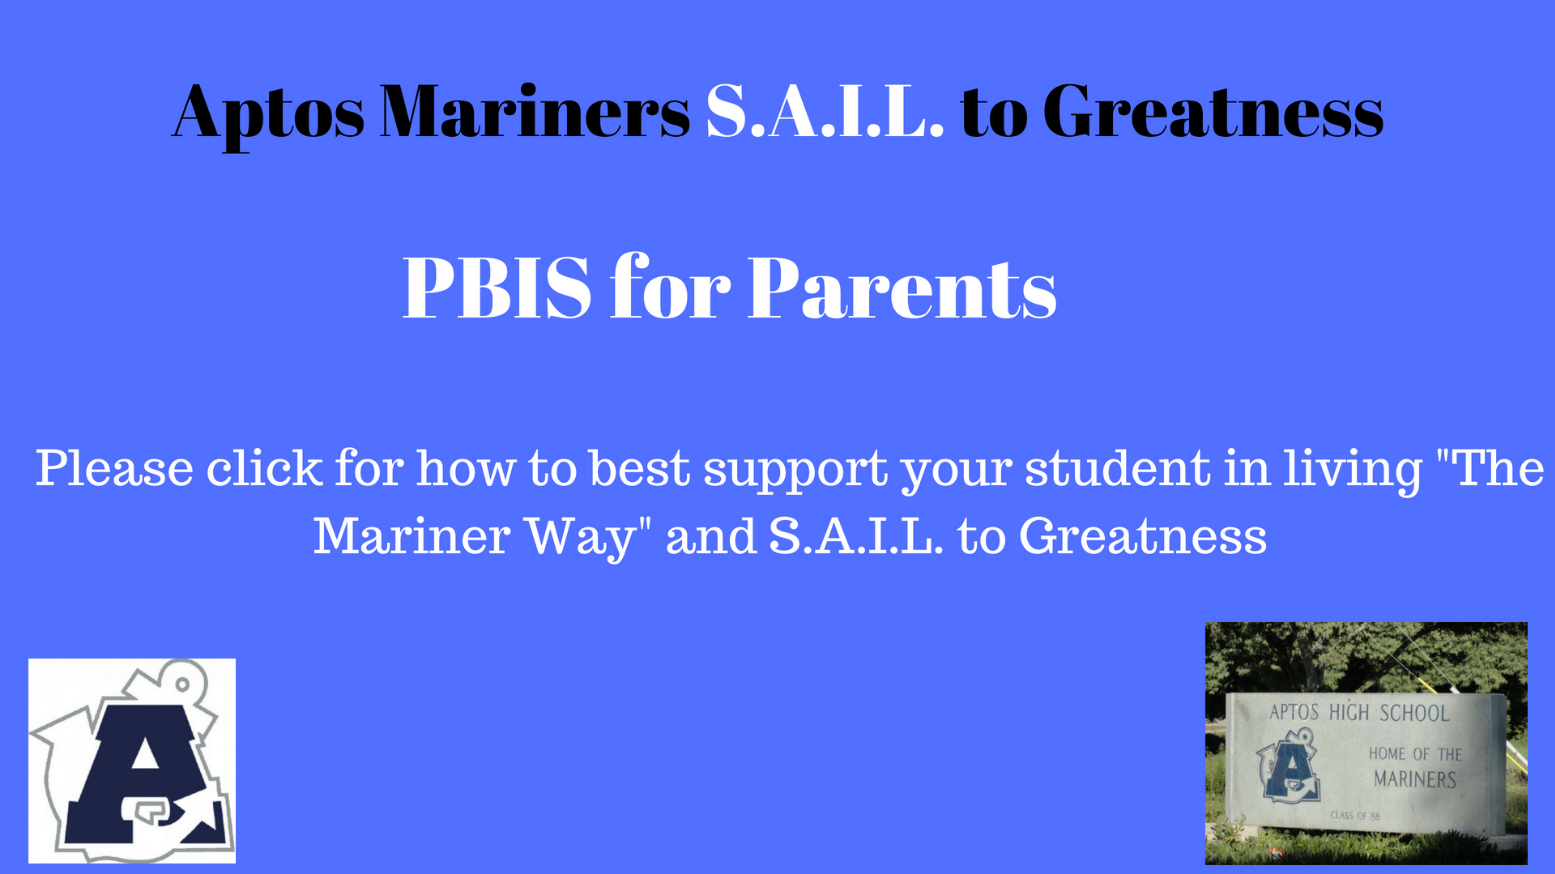 PBIS for Parents